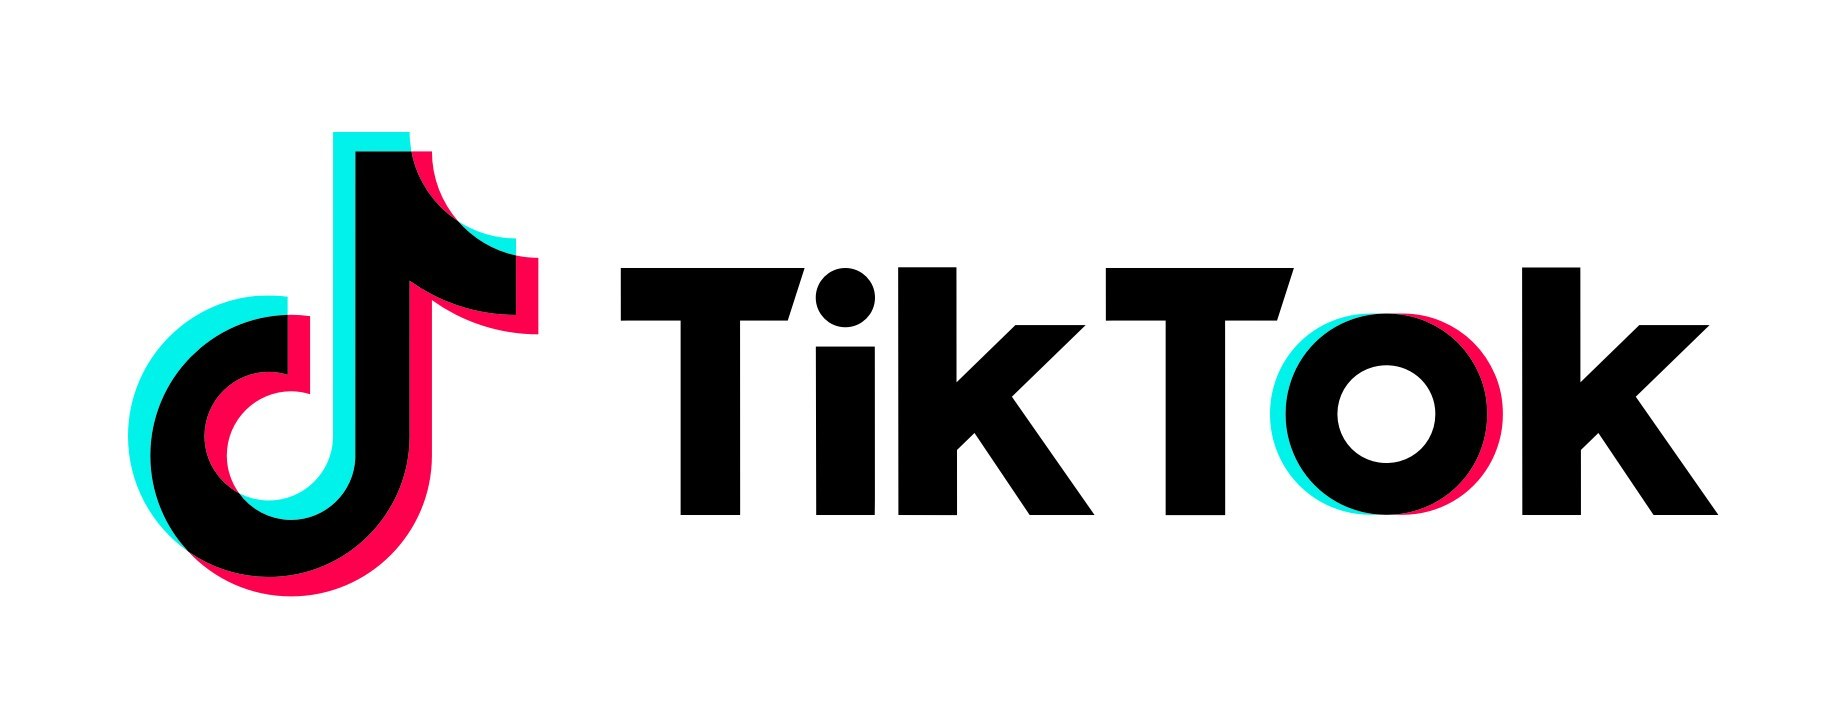 How To Save Other's Tik Tok Videos In Gallery